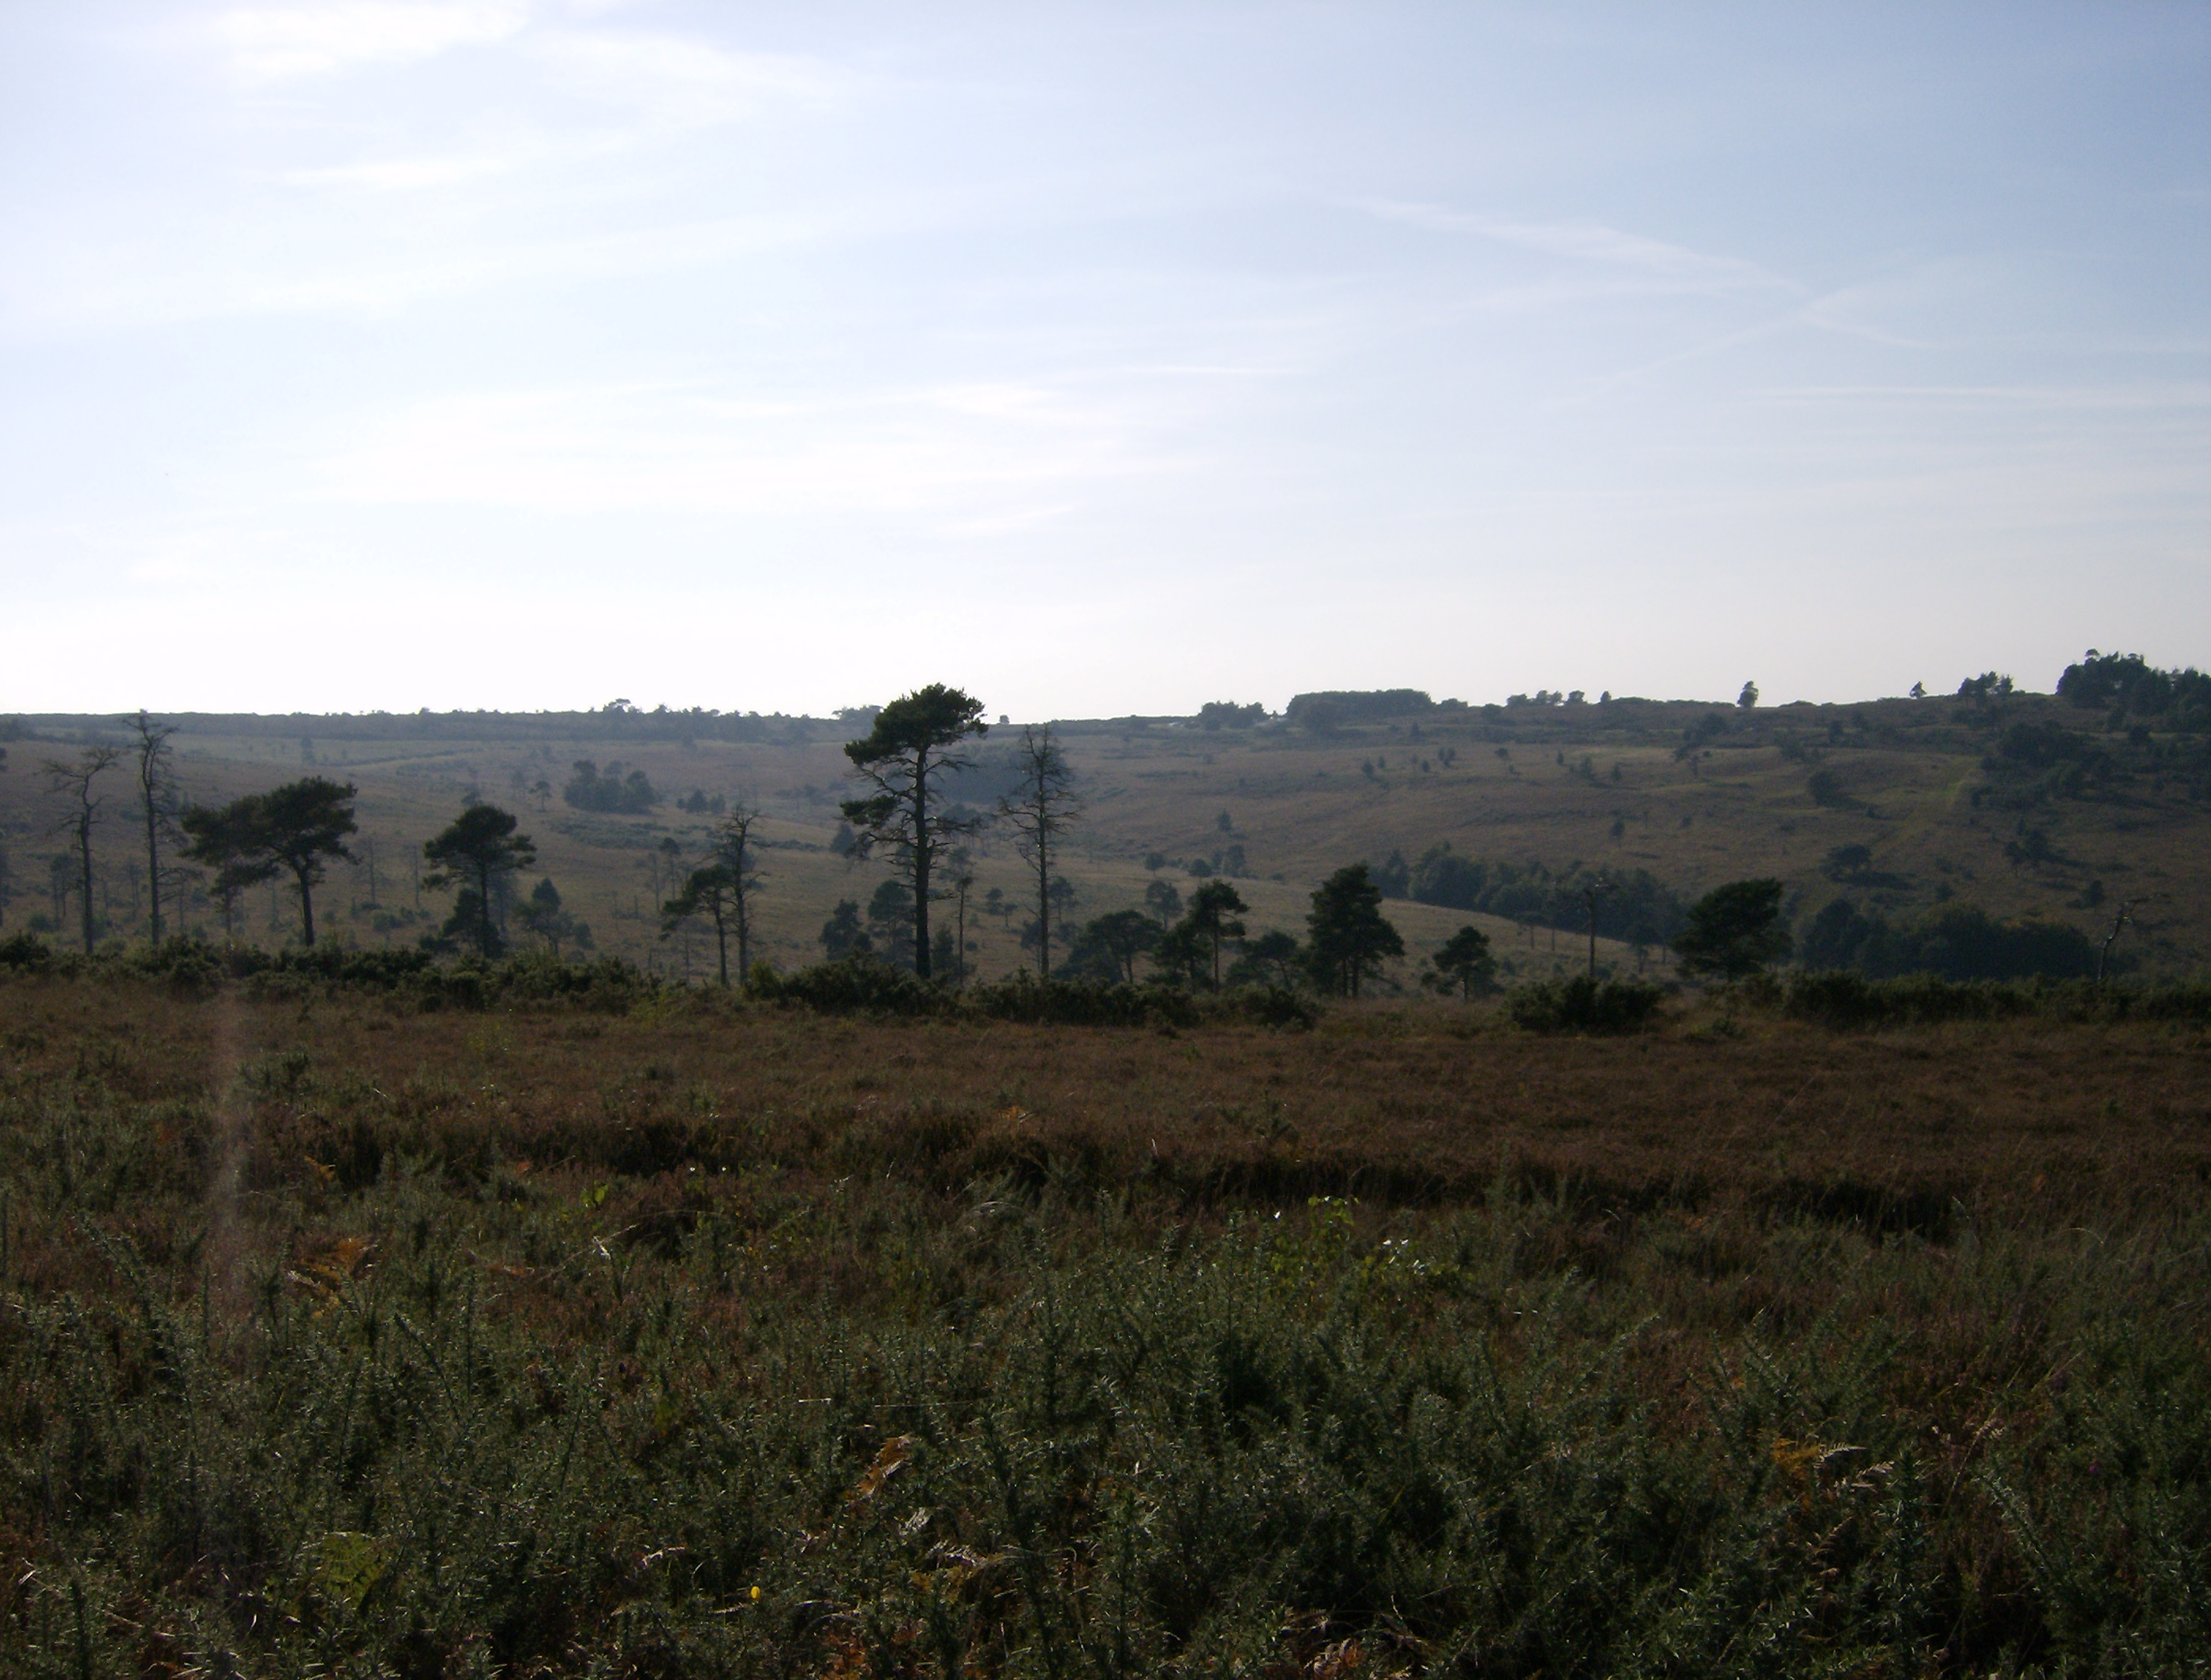 ashdown forest Introduction: at 2,500ha, ashdown forest is the largest area of open access land in the south-east its breezy, treeless heights consist of internationally-designated heathland, and the landscape has considerable evidence of human management over thousands of years.